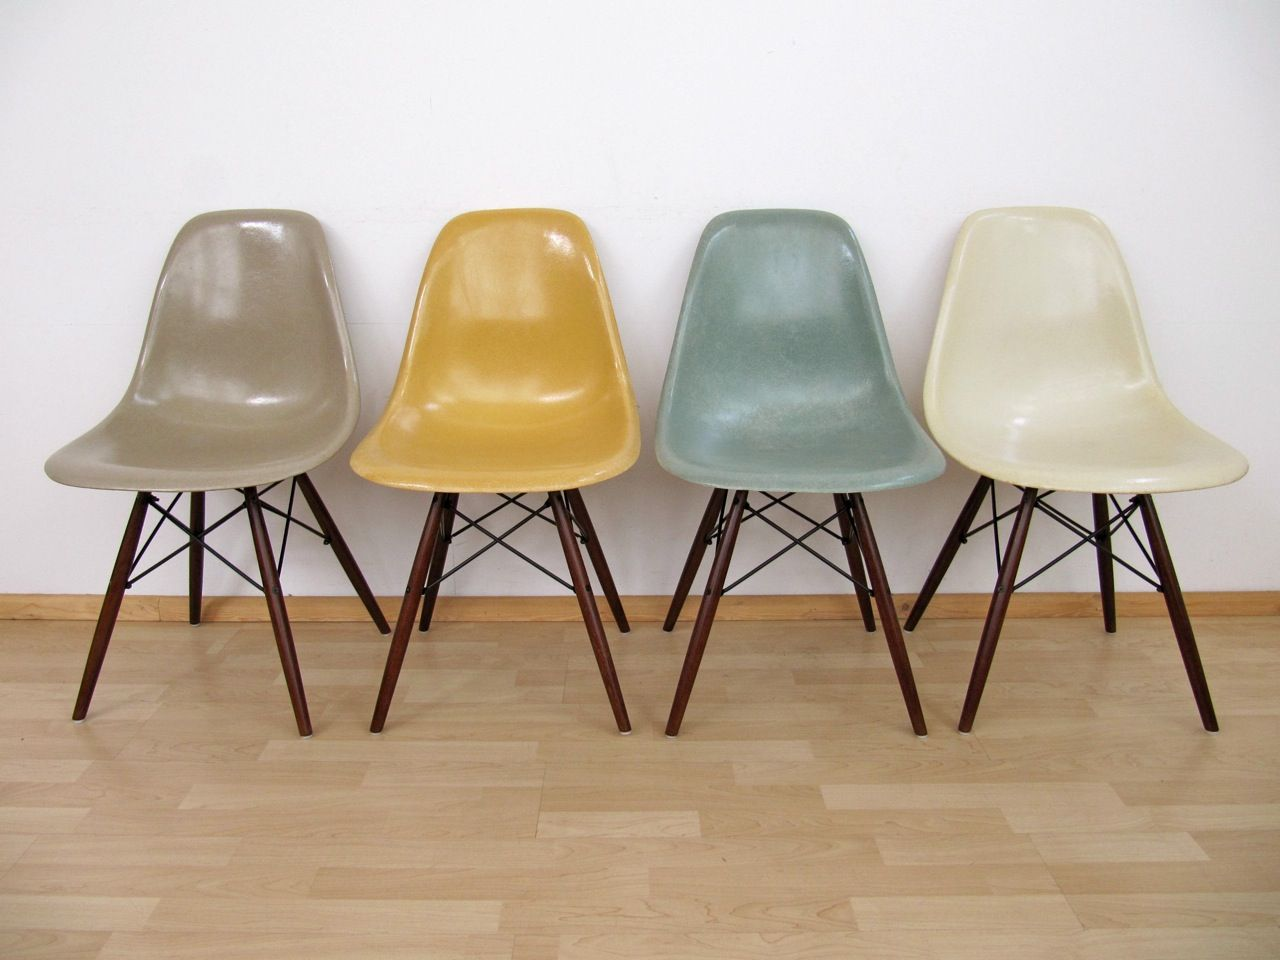 Eames chairs vitra taupe yellow blue cream. love the color